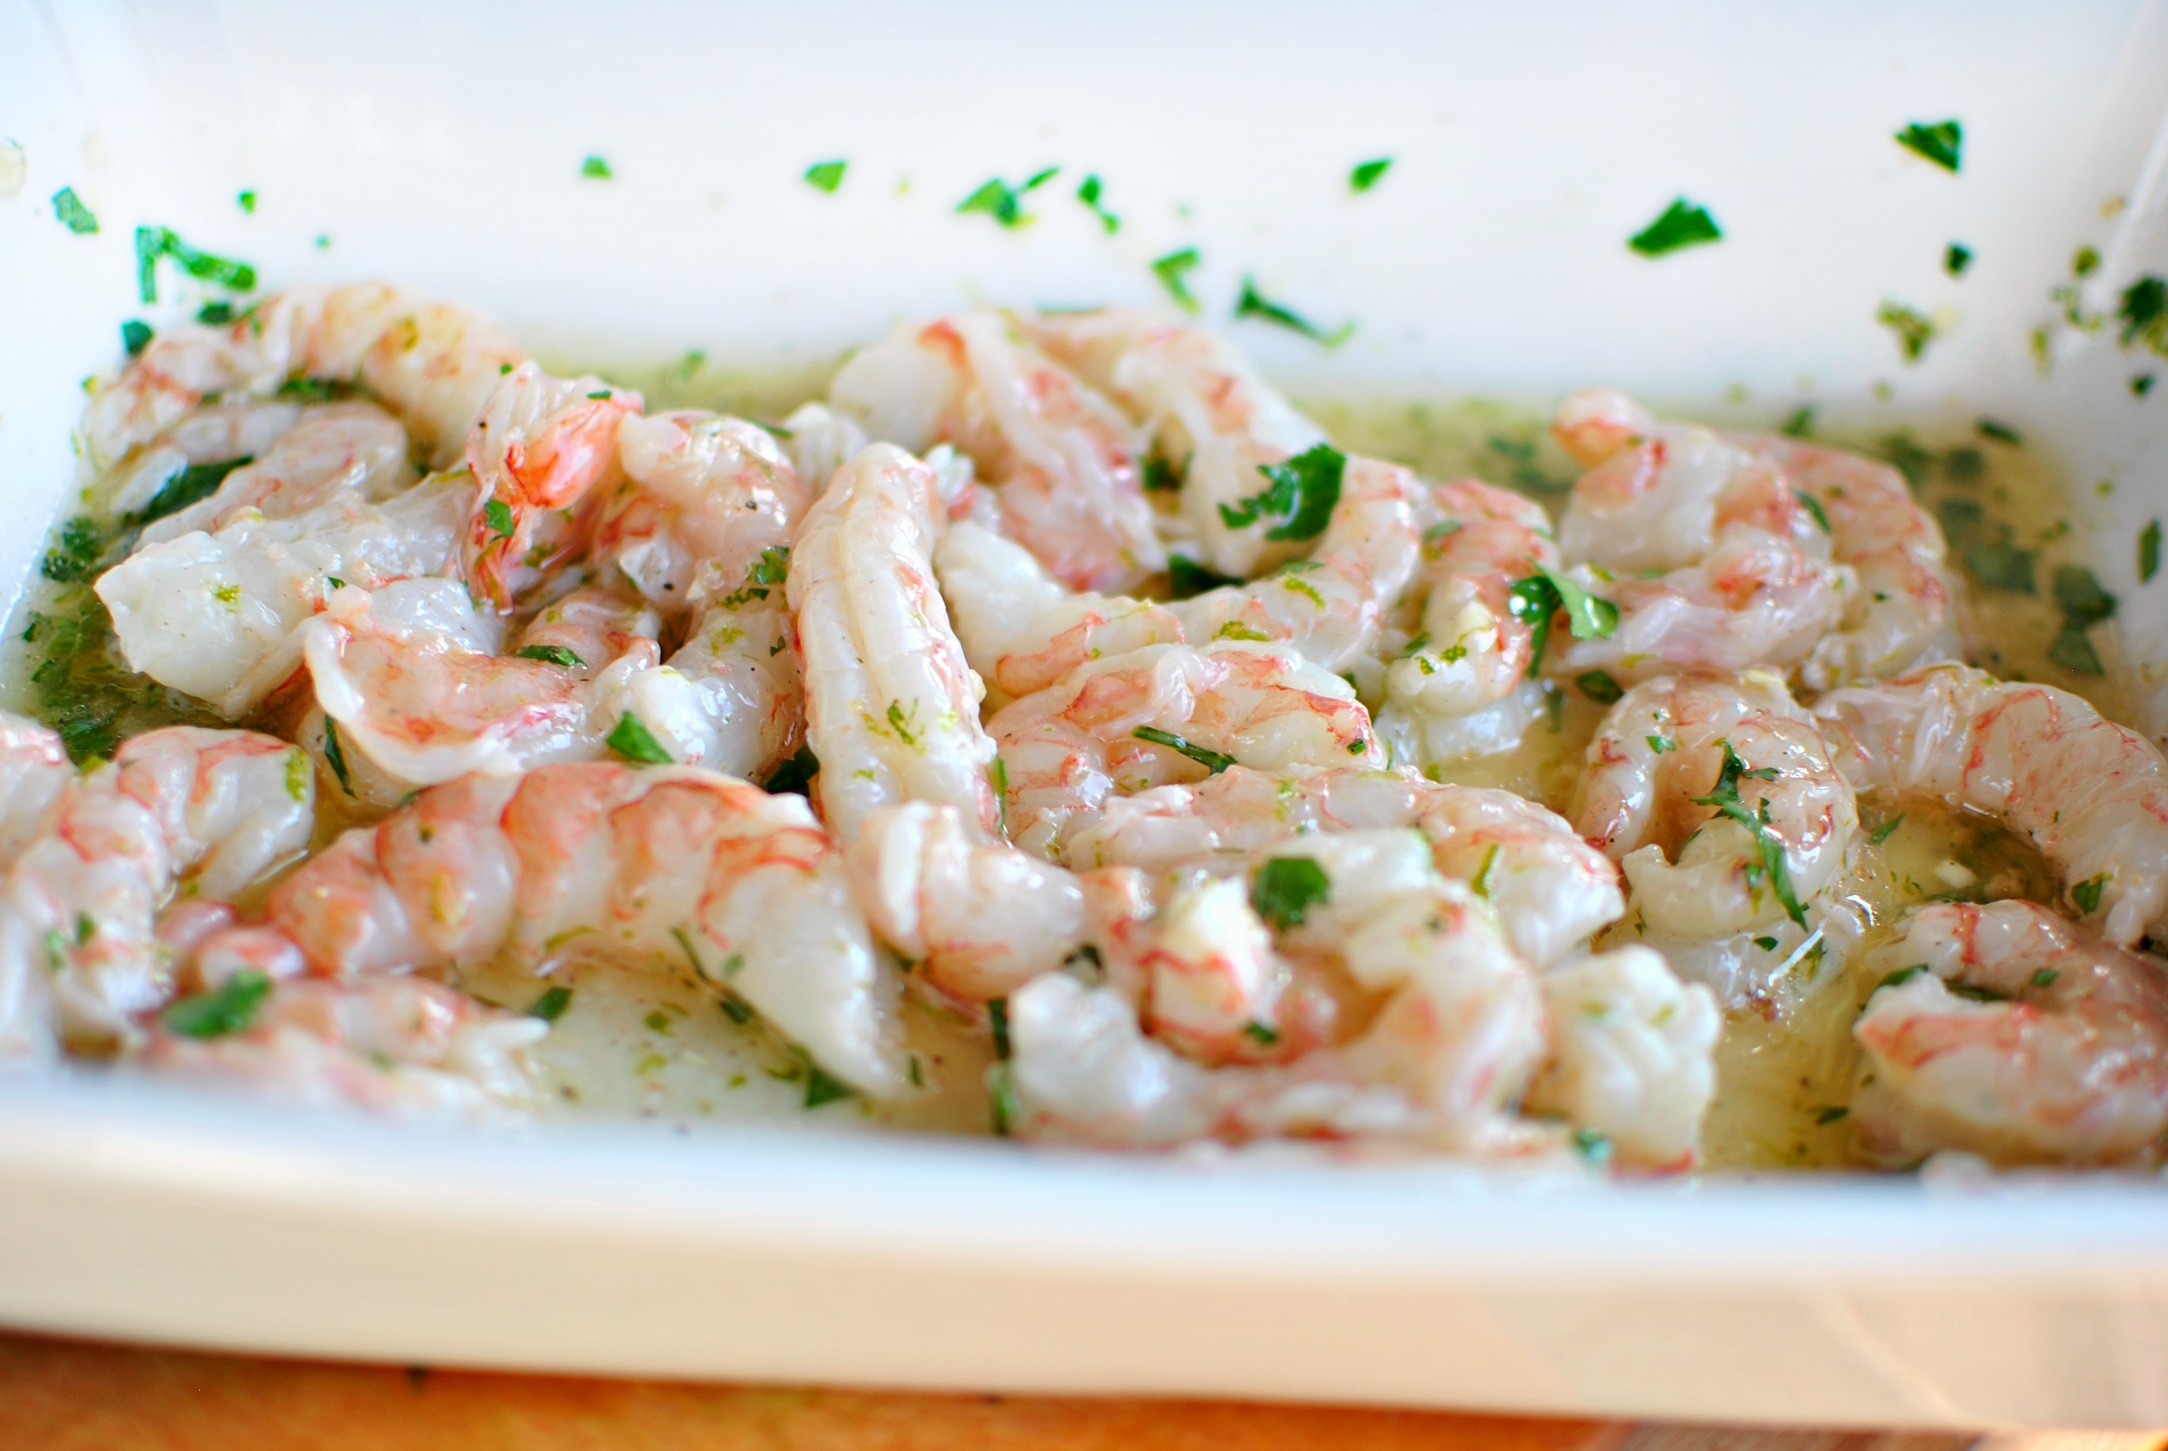 Toss the shrimp and toss them in the garlic lime goodness and let them ...